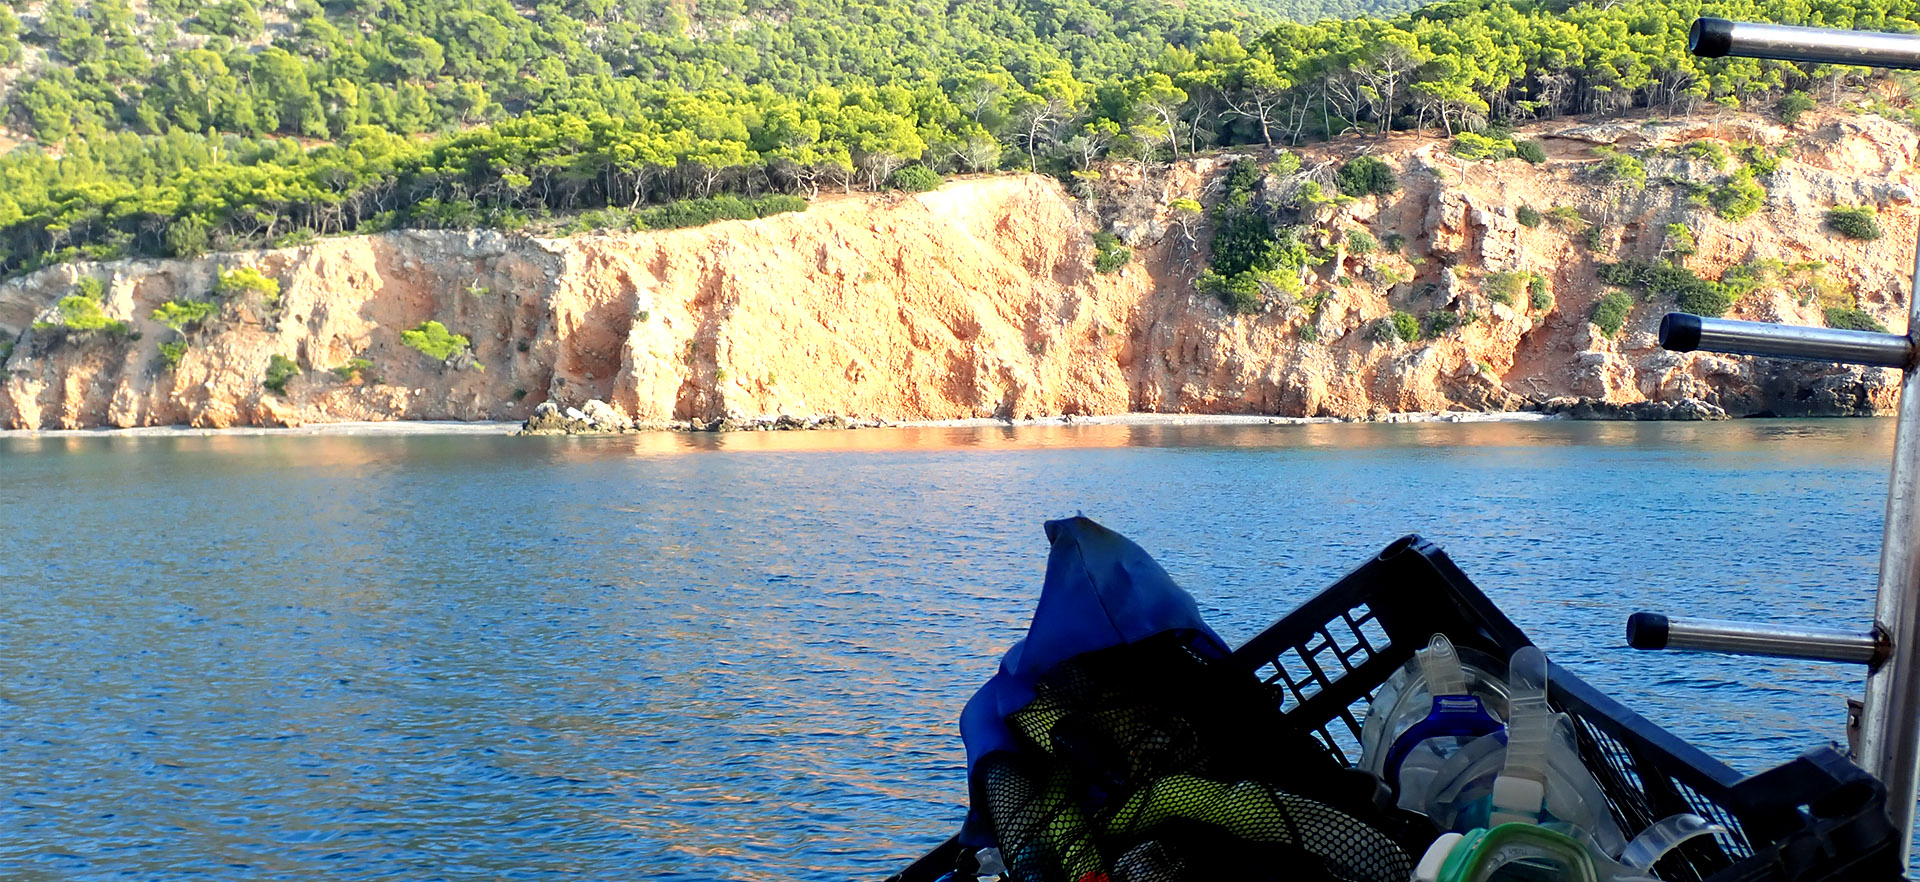 Verdant cliff seen from moving boat